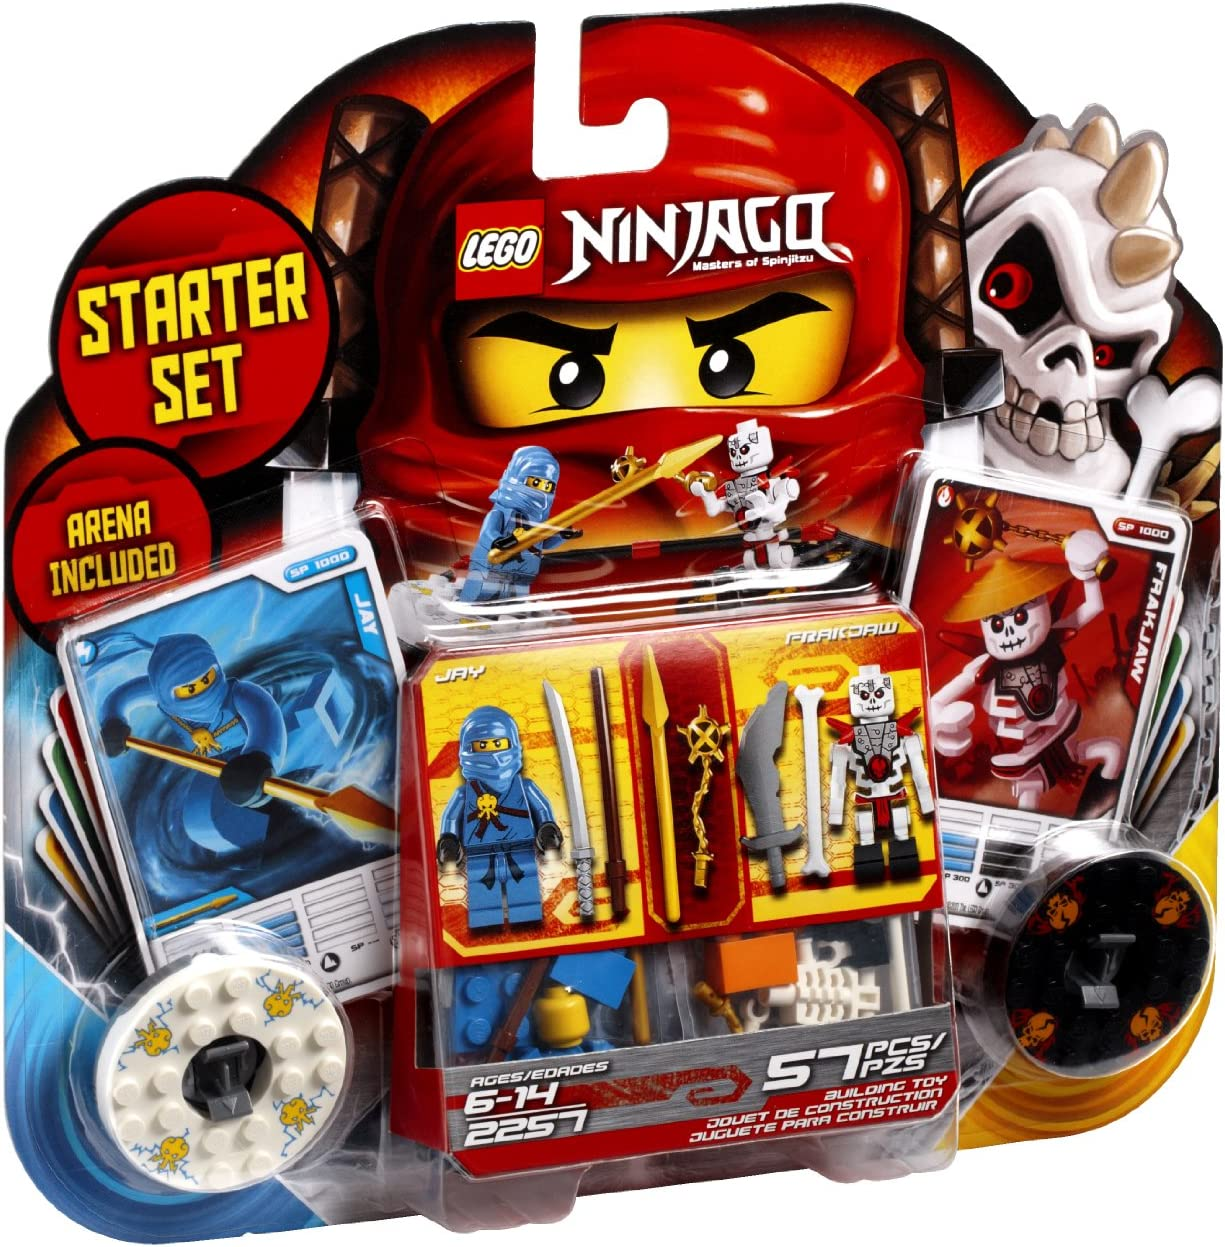 LEGO Ninjago Spinjitzu Starter Set 2257 (Discontinued by manufacturer)